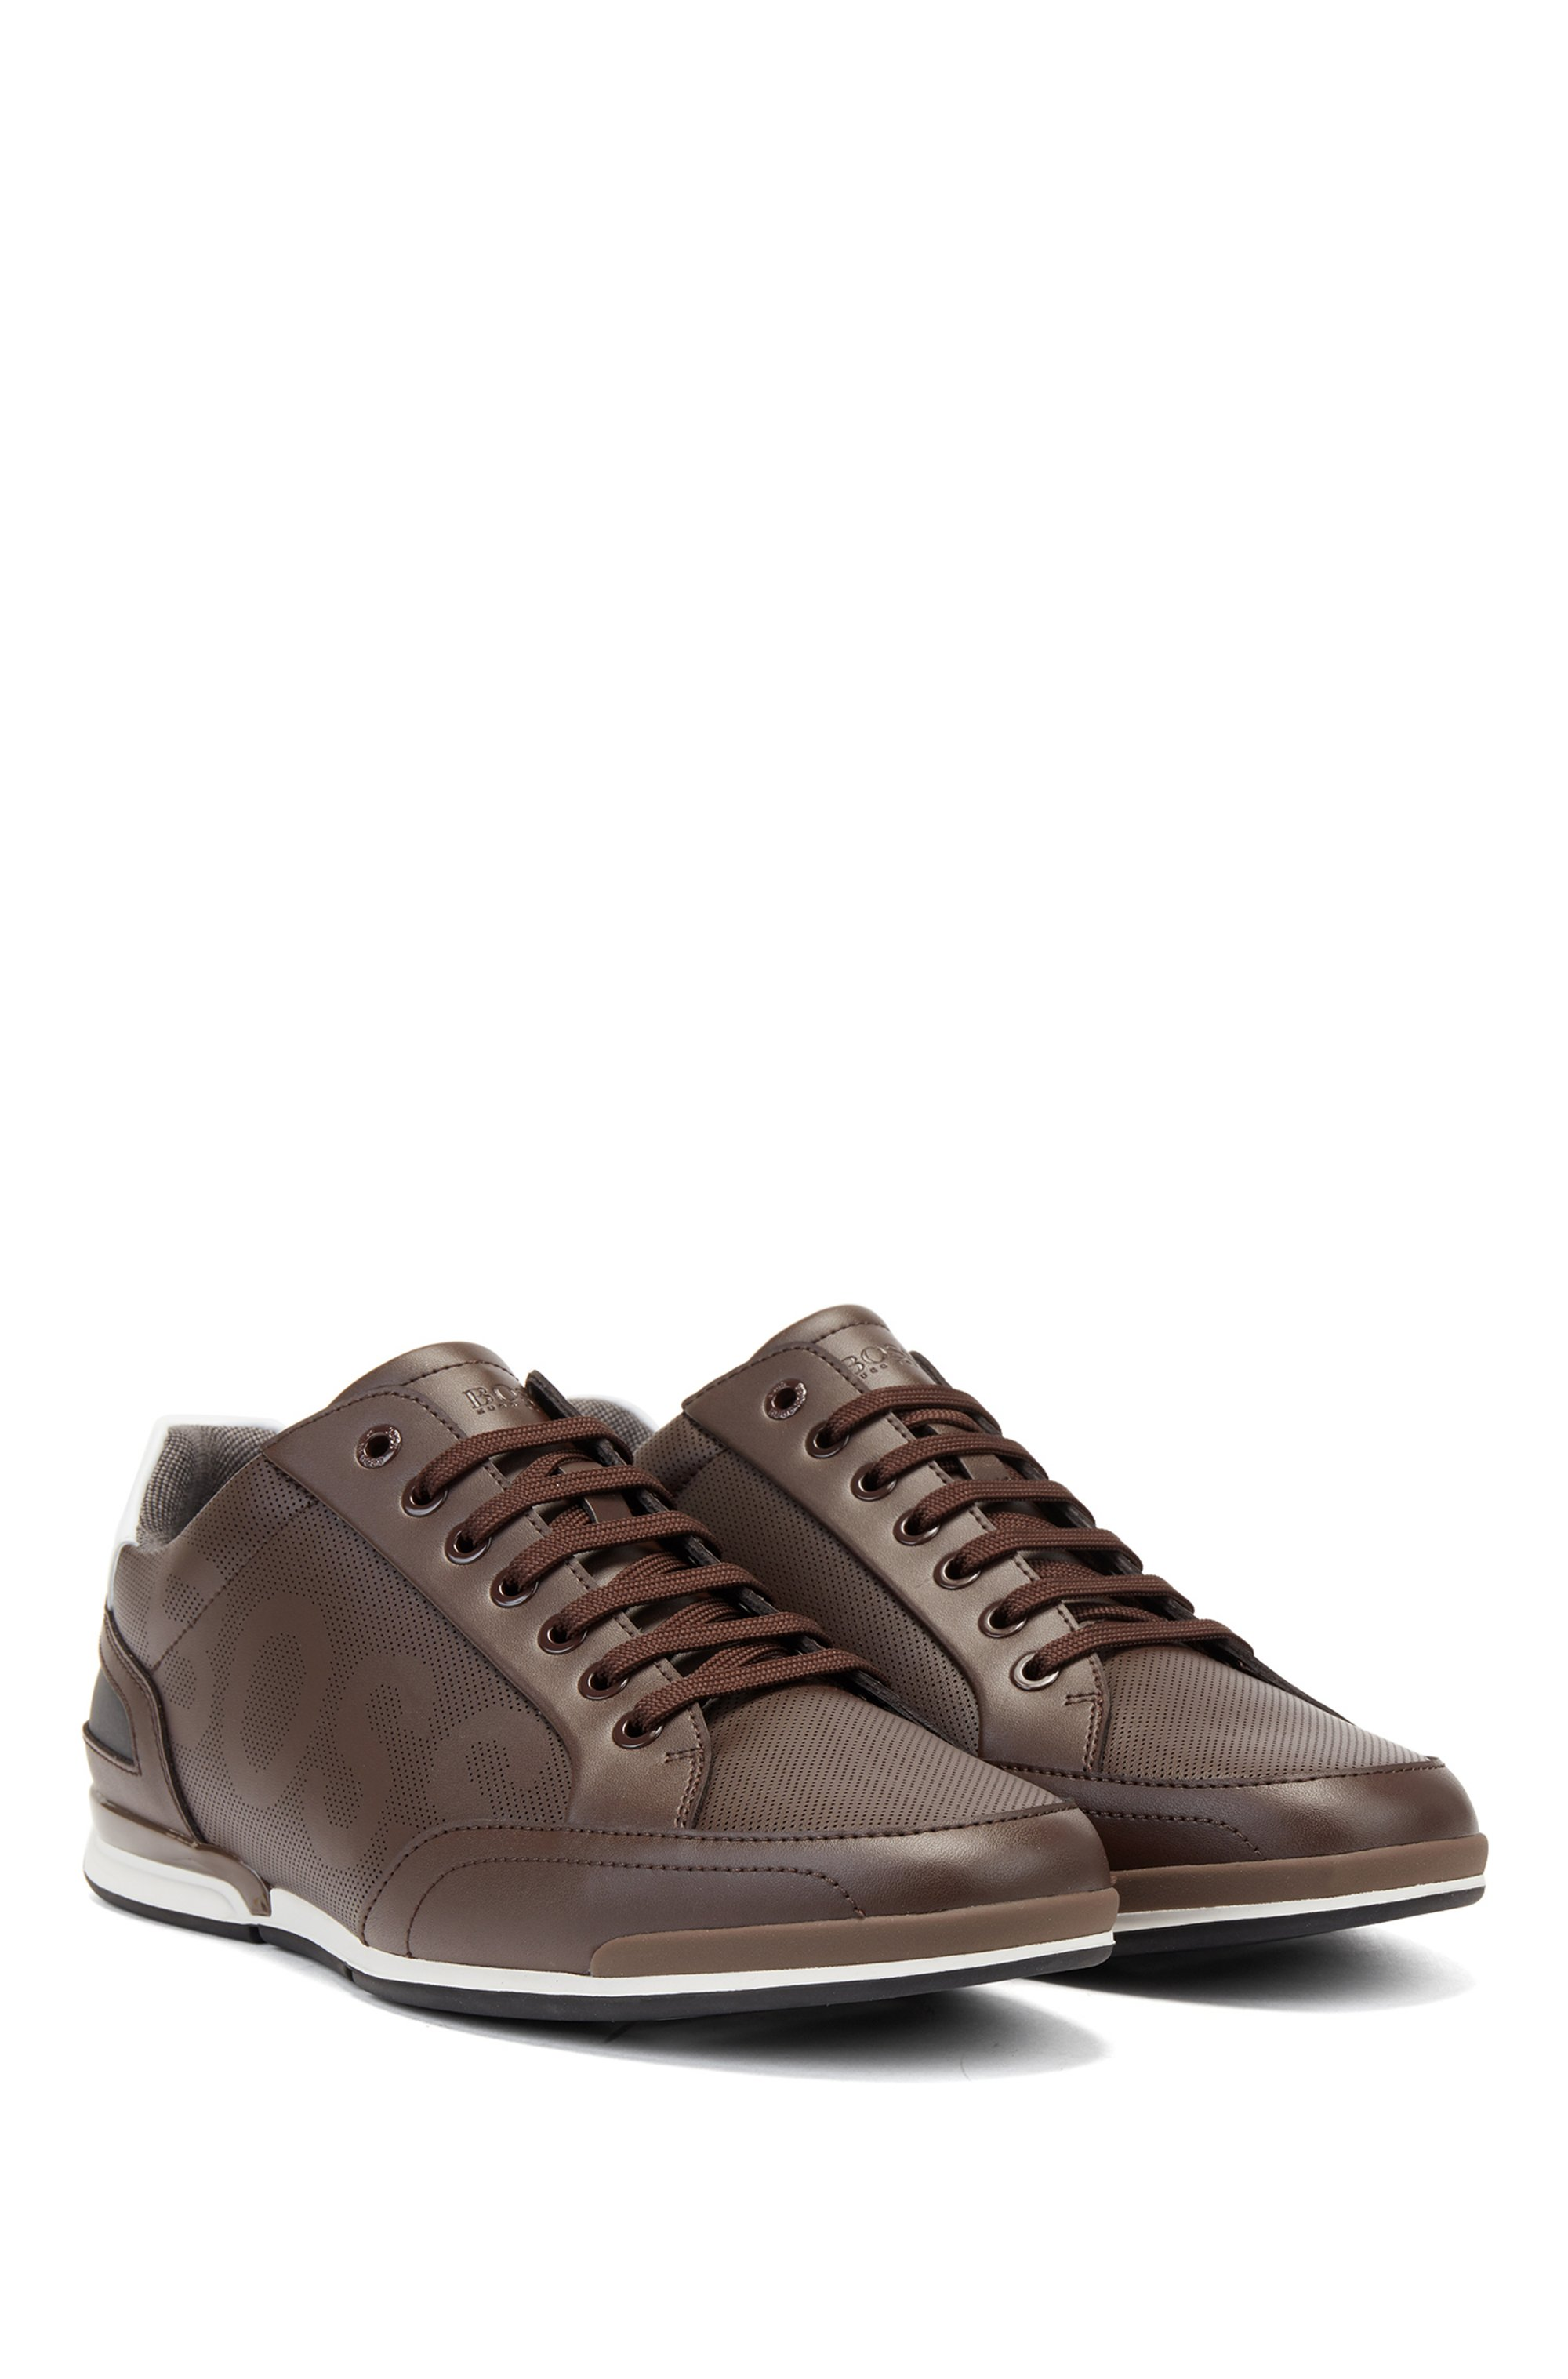 Low-profile leather trainers with perforated detailing